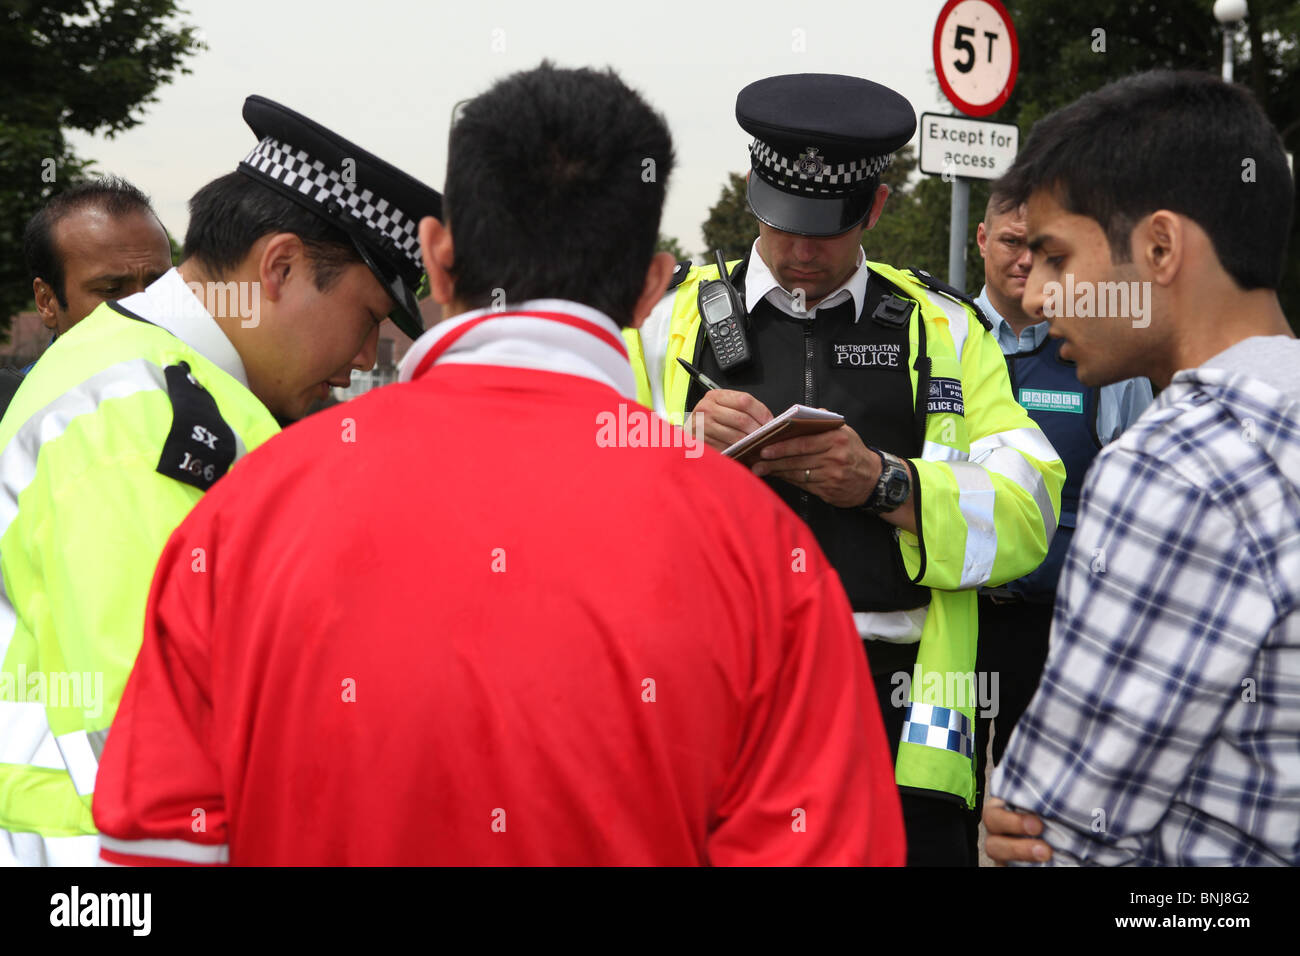 a police sting operation in Barnet, North London. The police are stopping cars and searching them in order to find - Stock Image